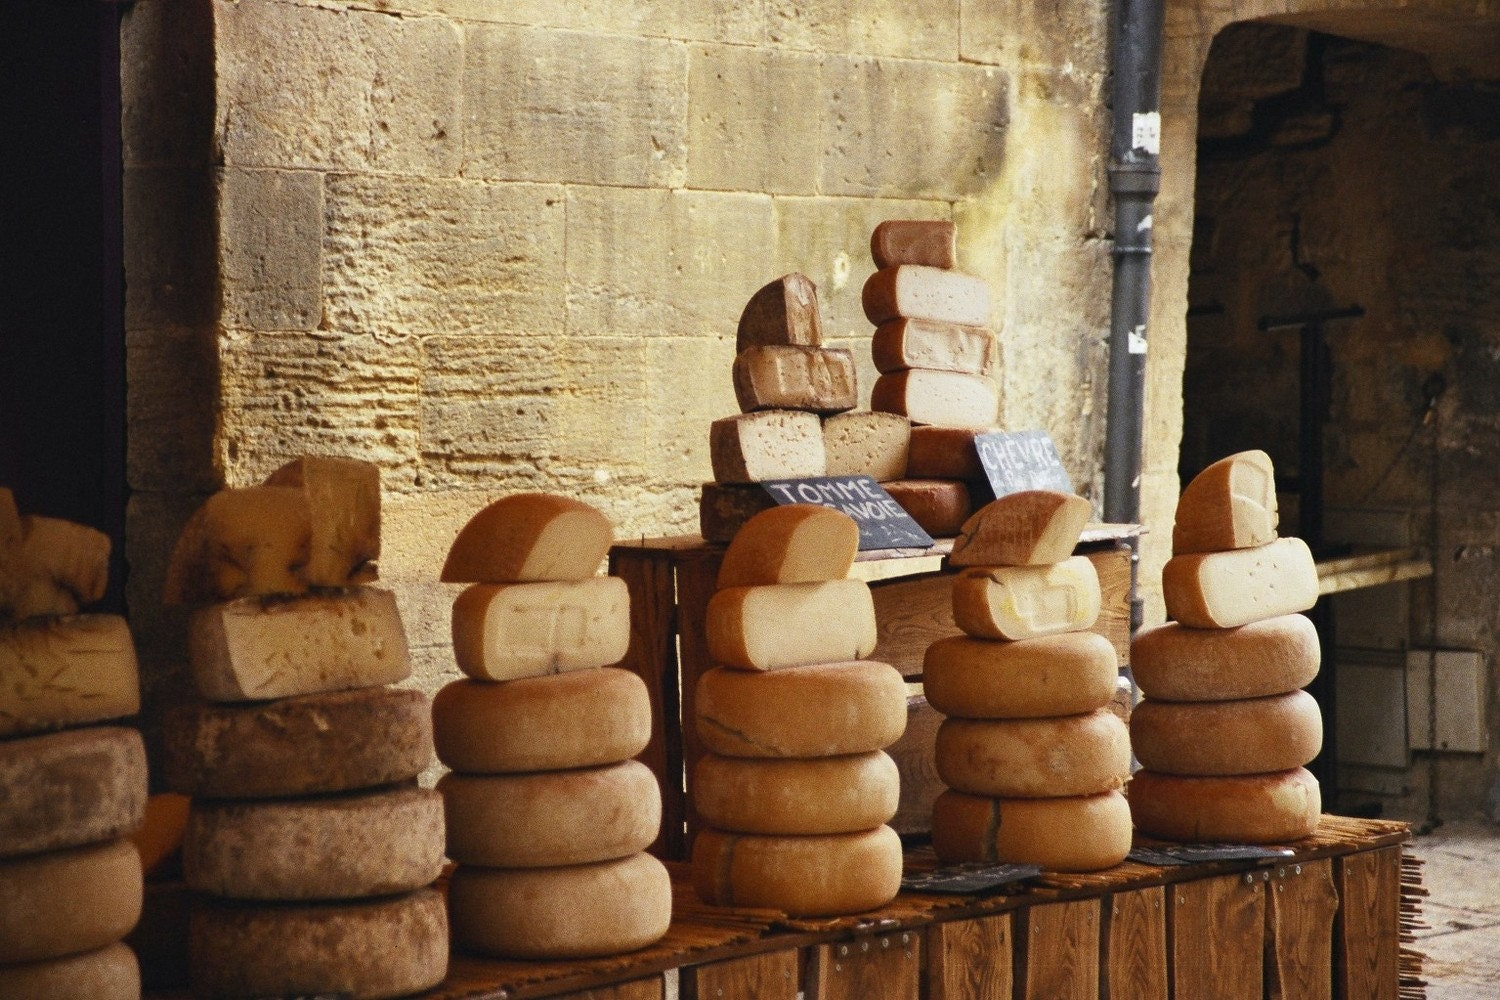 La Fromagerie - for the love of cheese -  8x10 Fine Art Photo.  Artisan Cheese, South of France, Food Photography for home decor or kitchen.